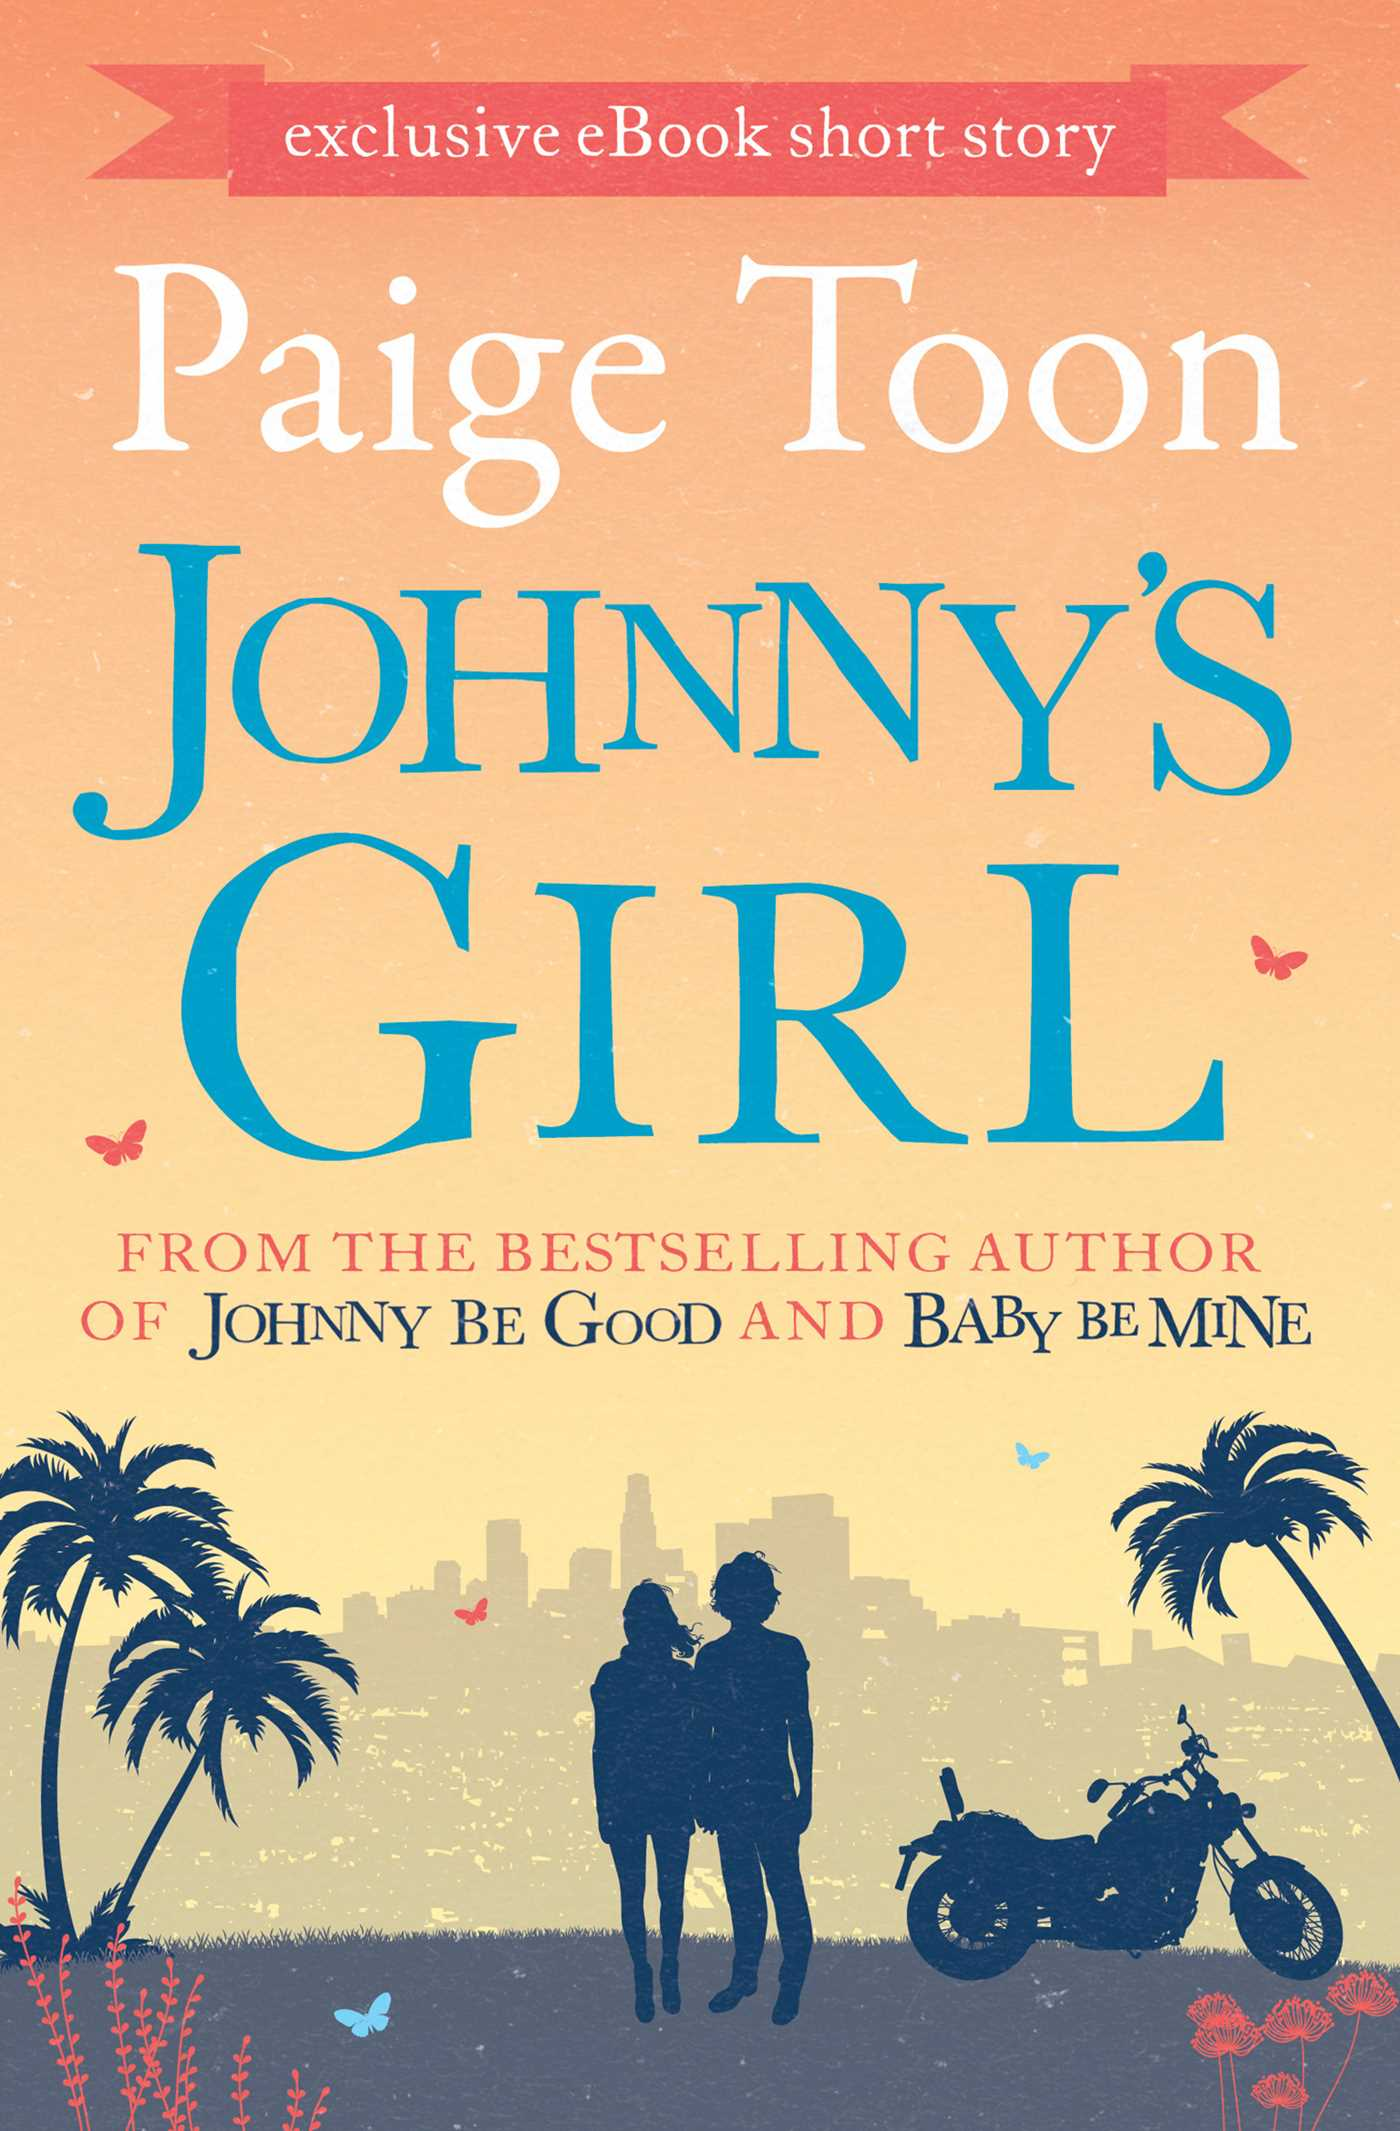 Johnnys girl ebook by paige toon official publisher page johnnys girl 9781471133510 hr fandeluxe PDF